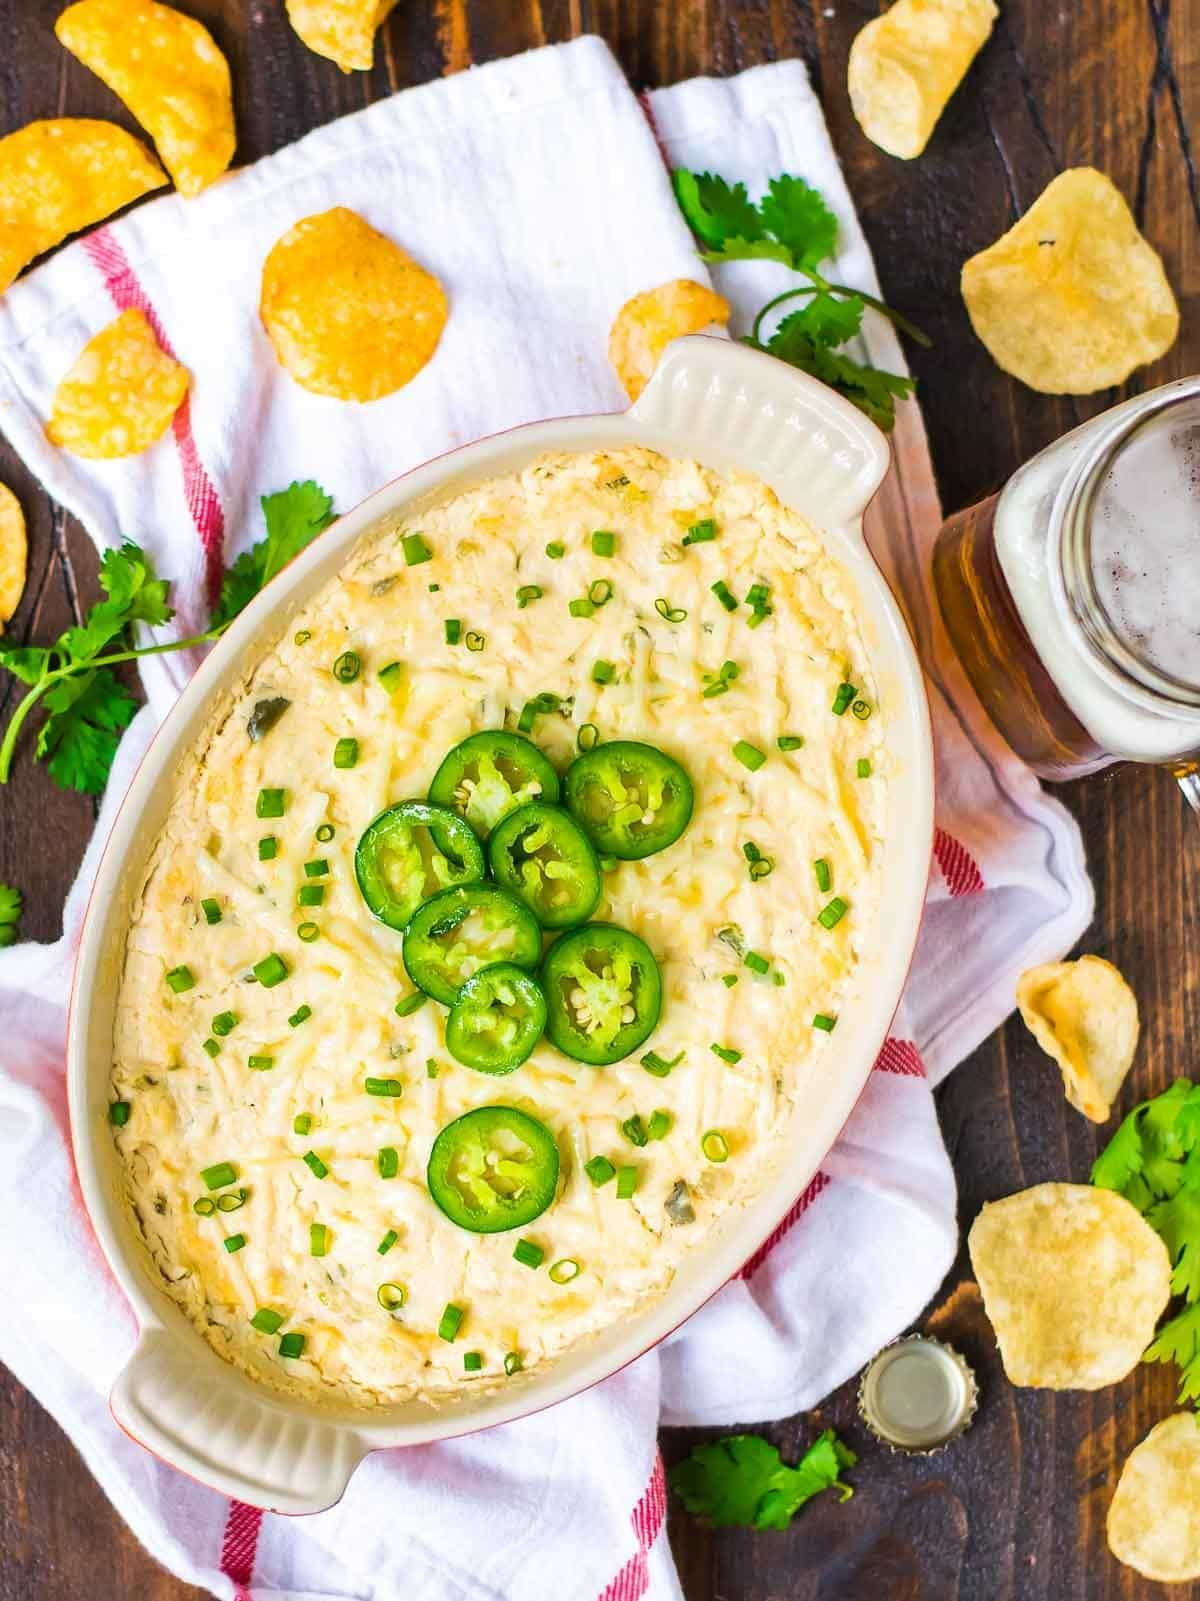 Hot Crab Dip - the BEST easy party appetizer. Made with cream cheese, sweet crab, and shredded cheese. Perfect for football food for game day and tailgates. @wellplated